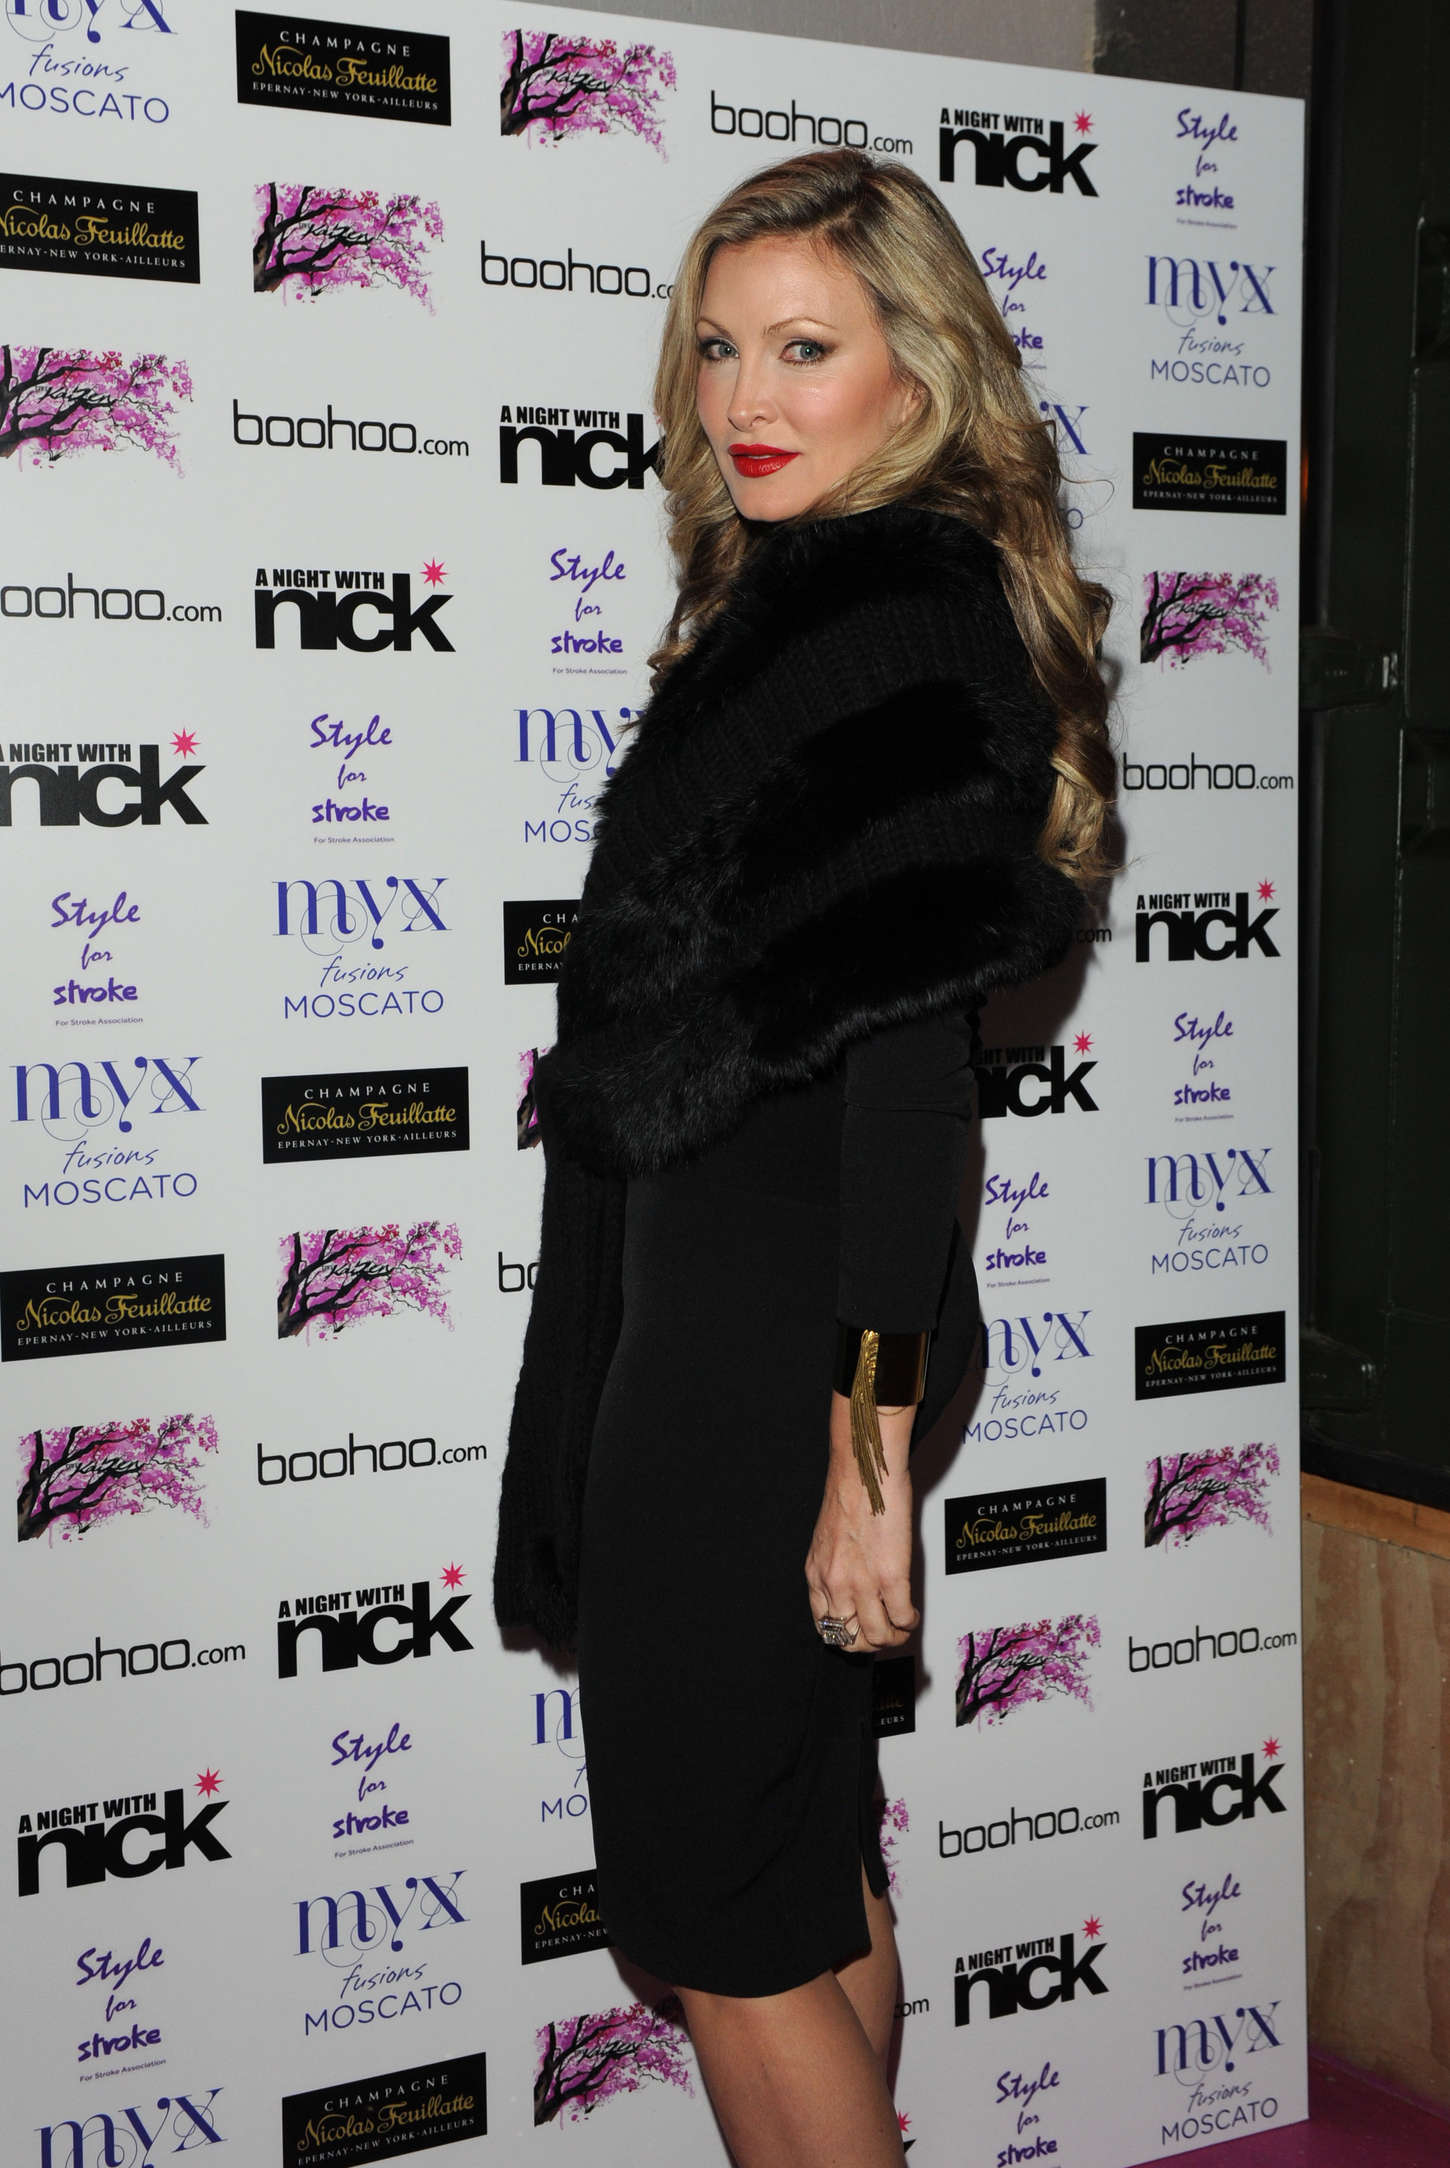 Caprice Bourret A Night With Nick in London